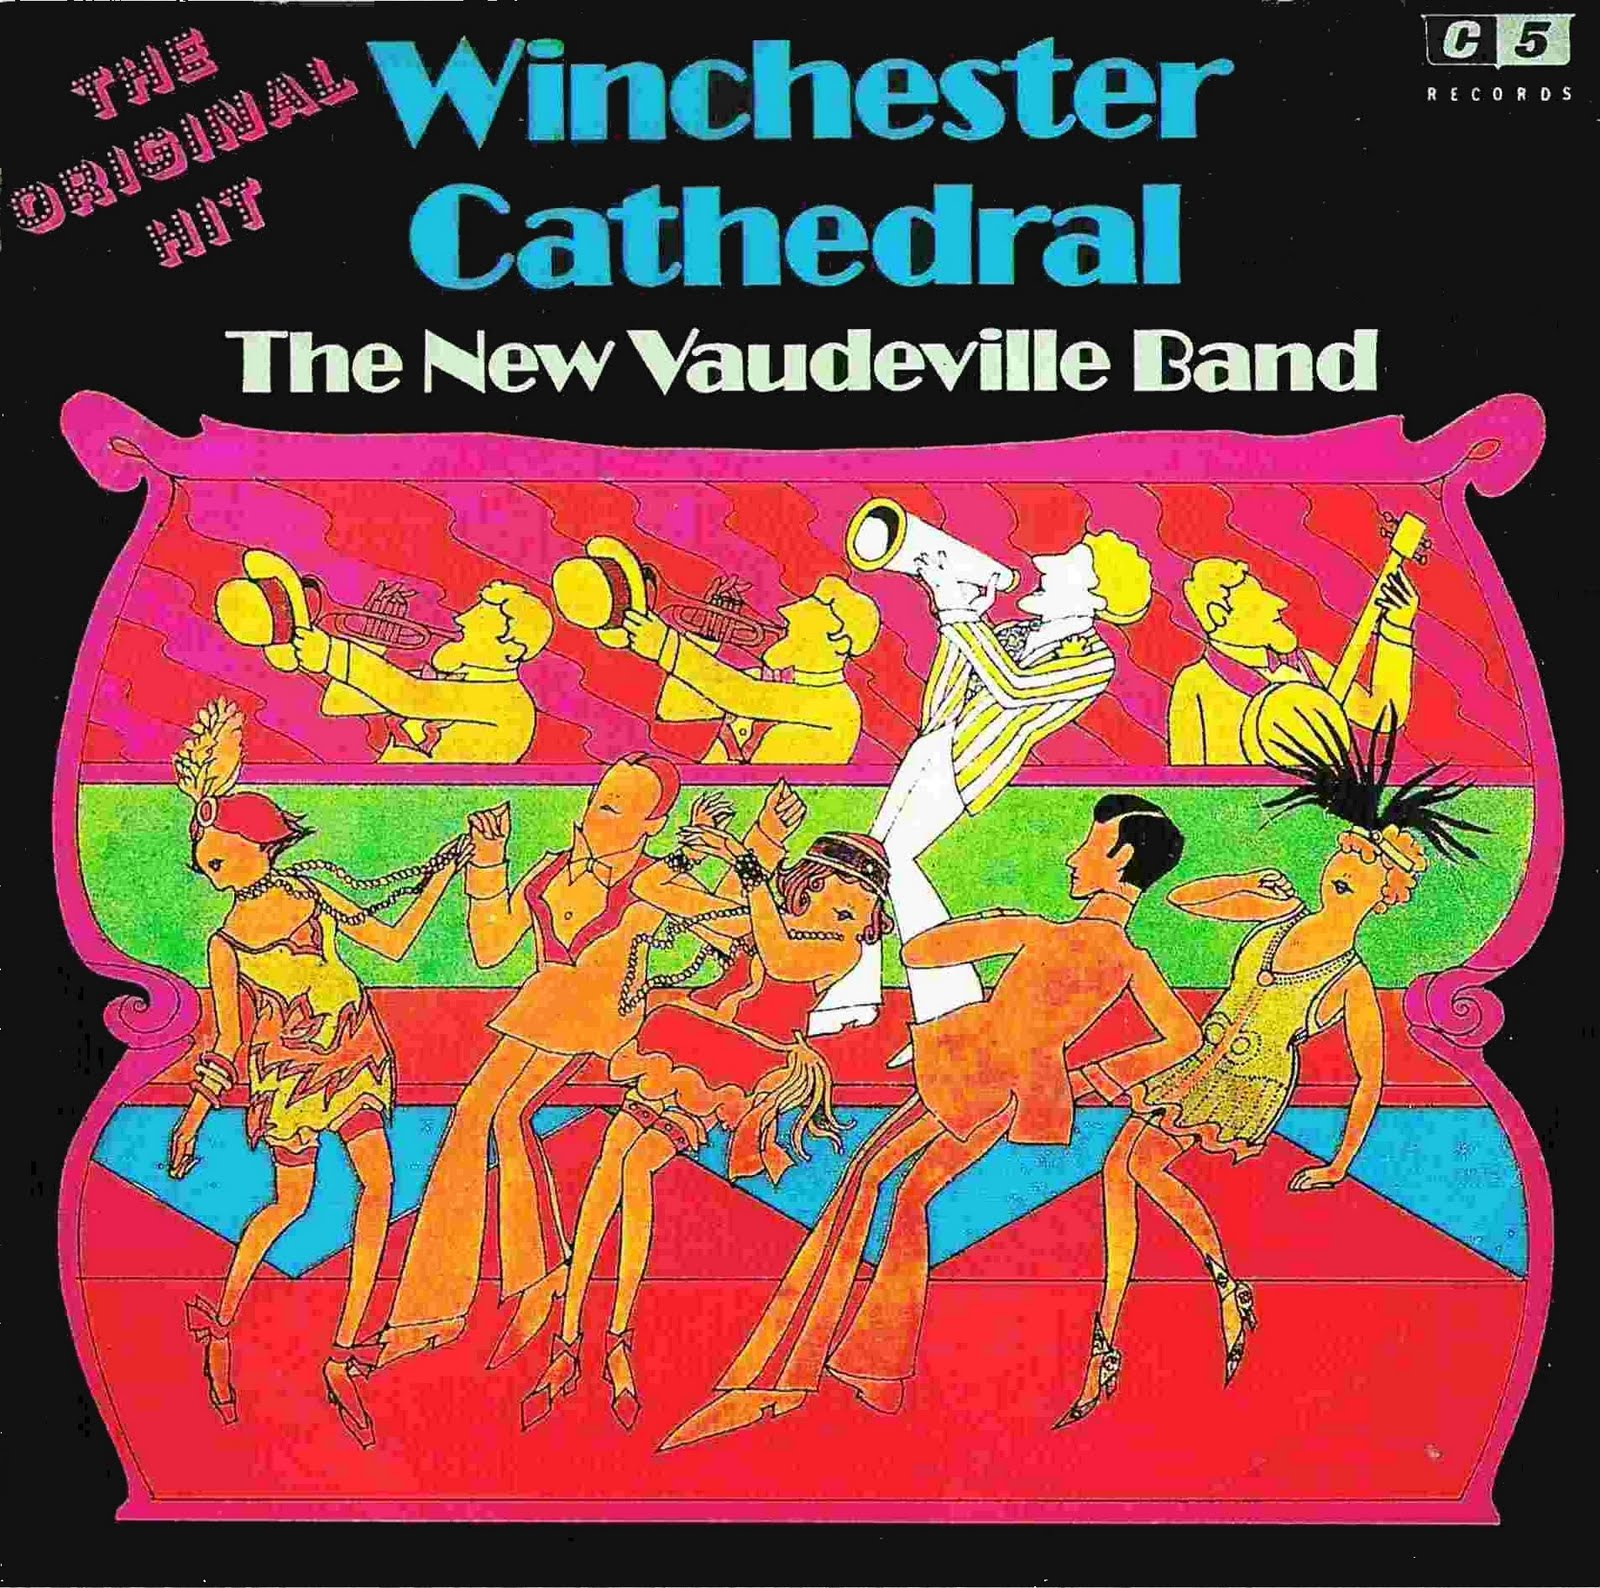 http://3.bp.blogspot.com/-WTRGz5mWRJY/TmsBHcRb5PI/AAAAAAAAB6o/gOJdlQCED8k/s1600/New_Vaudeville_Band_-_Winchester_Cathedral-%255Bfront%255D-%255Bwww.FreeCovers.net%255D.jpg